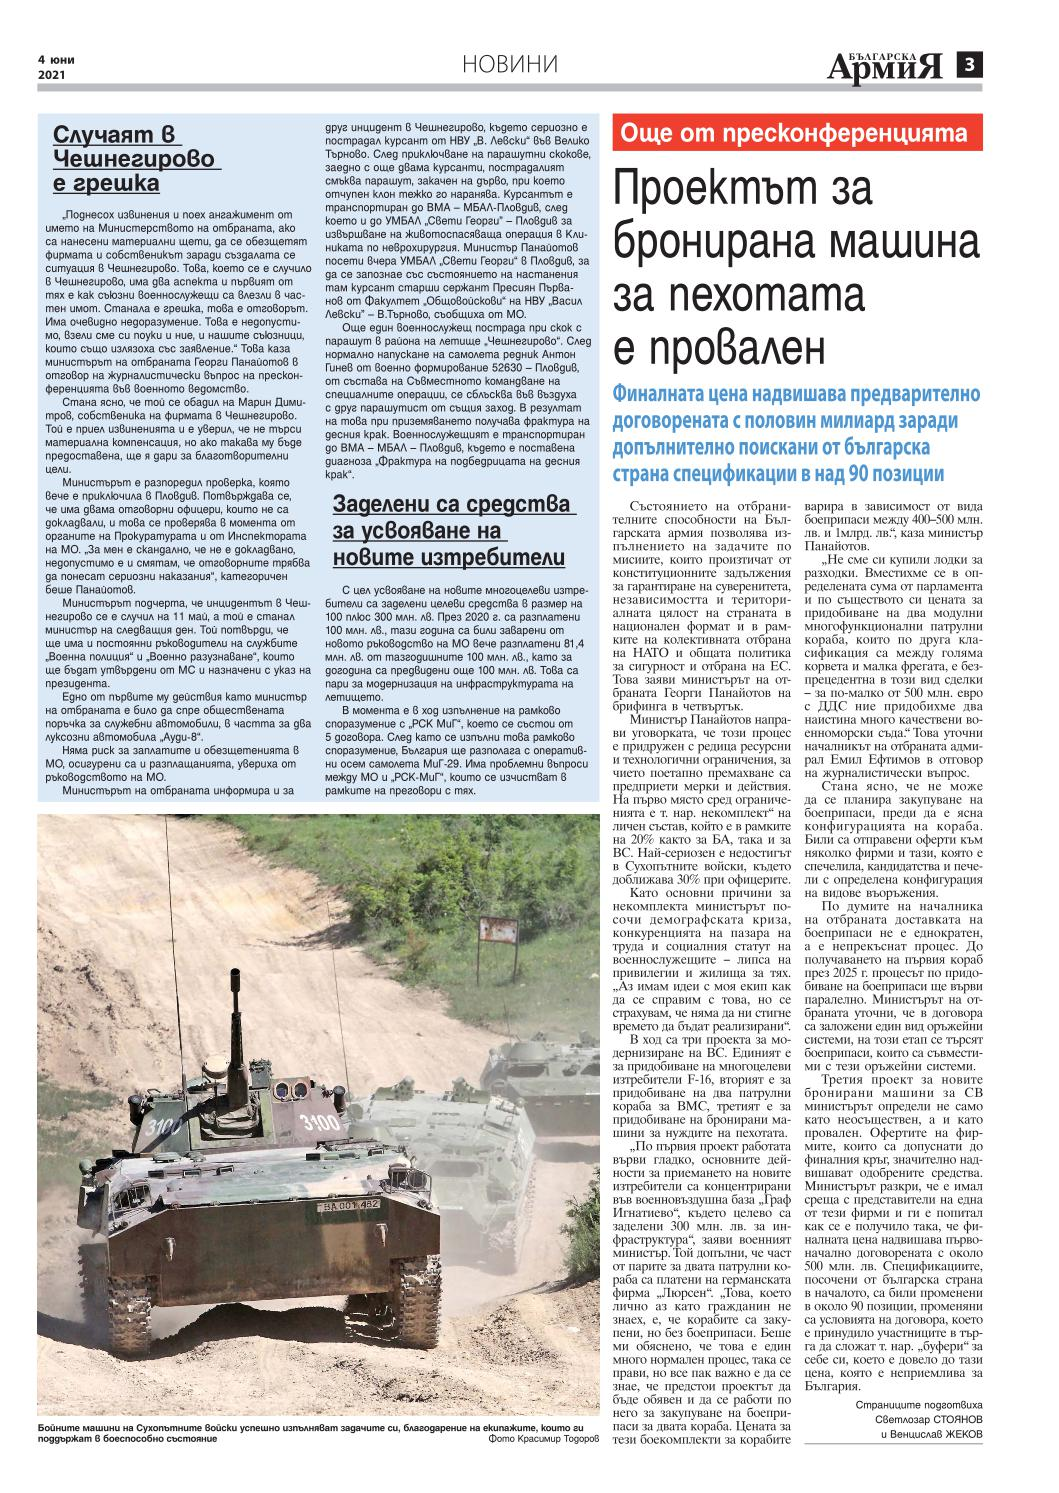 https://armymedia.bg/wp-content/uploads/2021/06/03.page1_.jpg